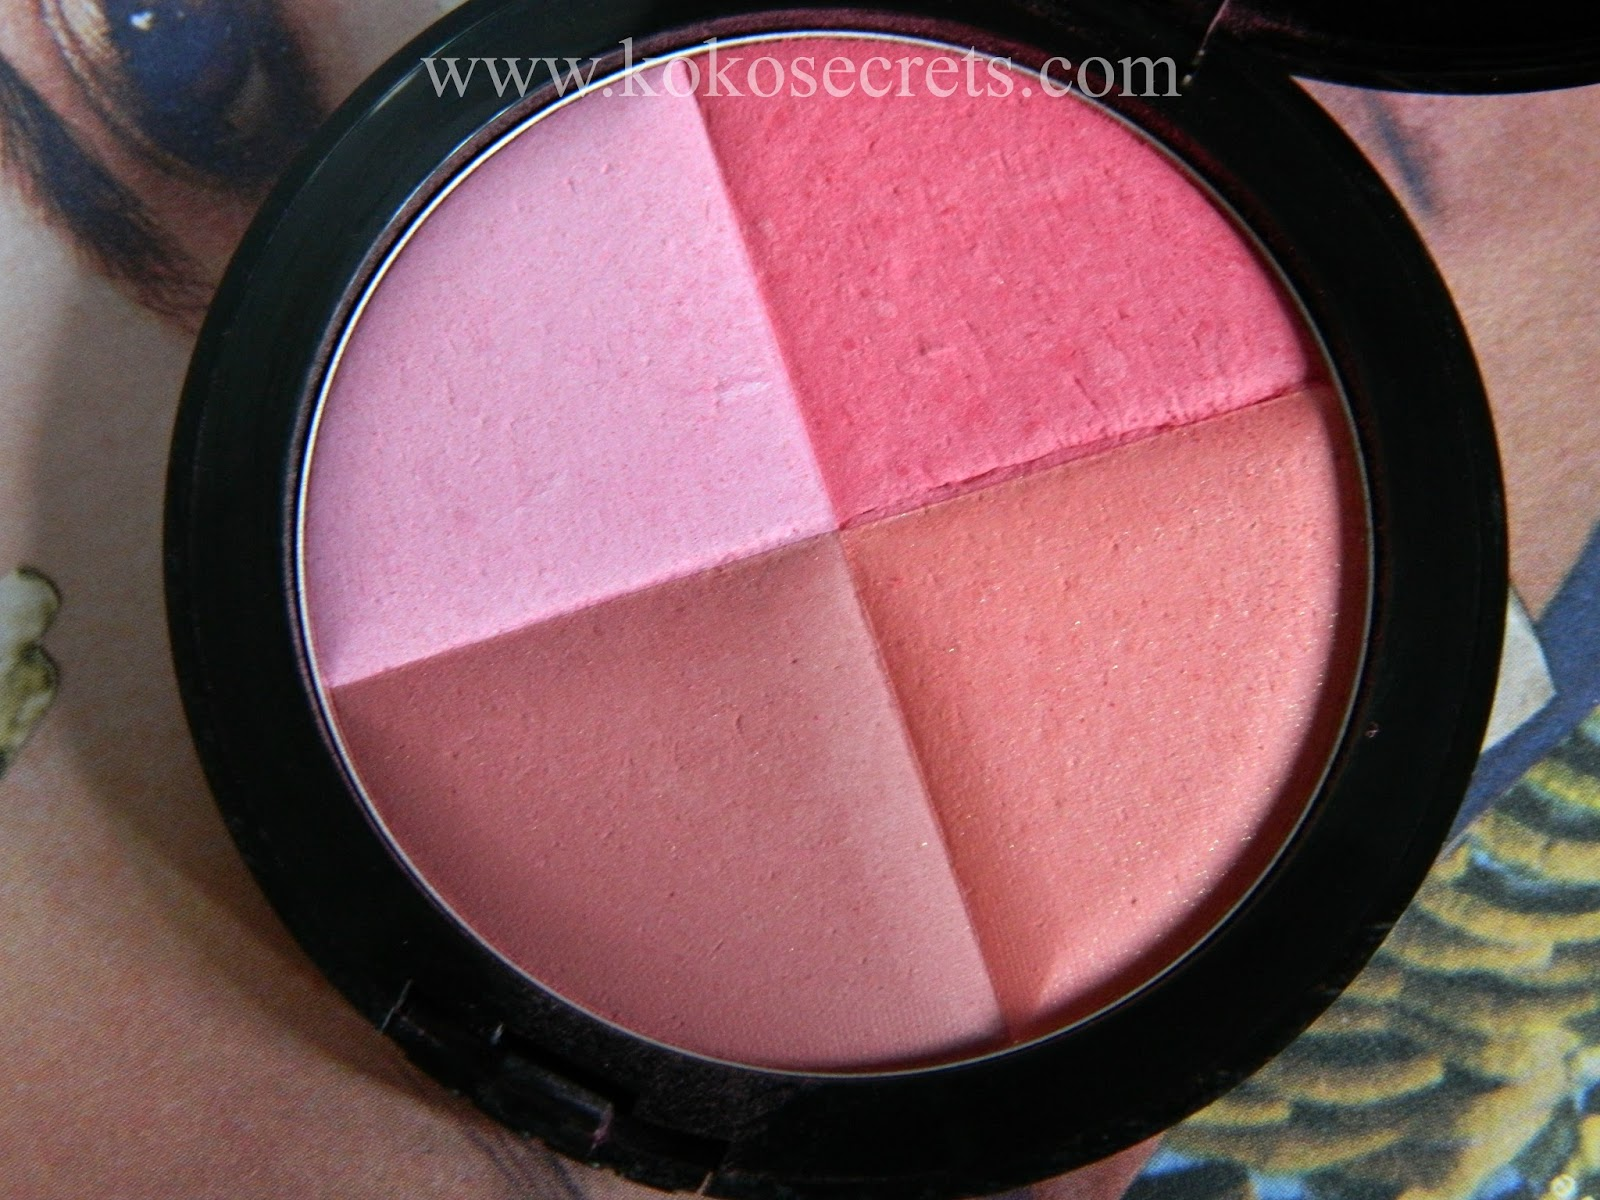 A Hidden Gem Multicolour Blush By Gosh In Pink Pie